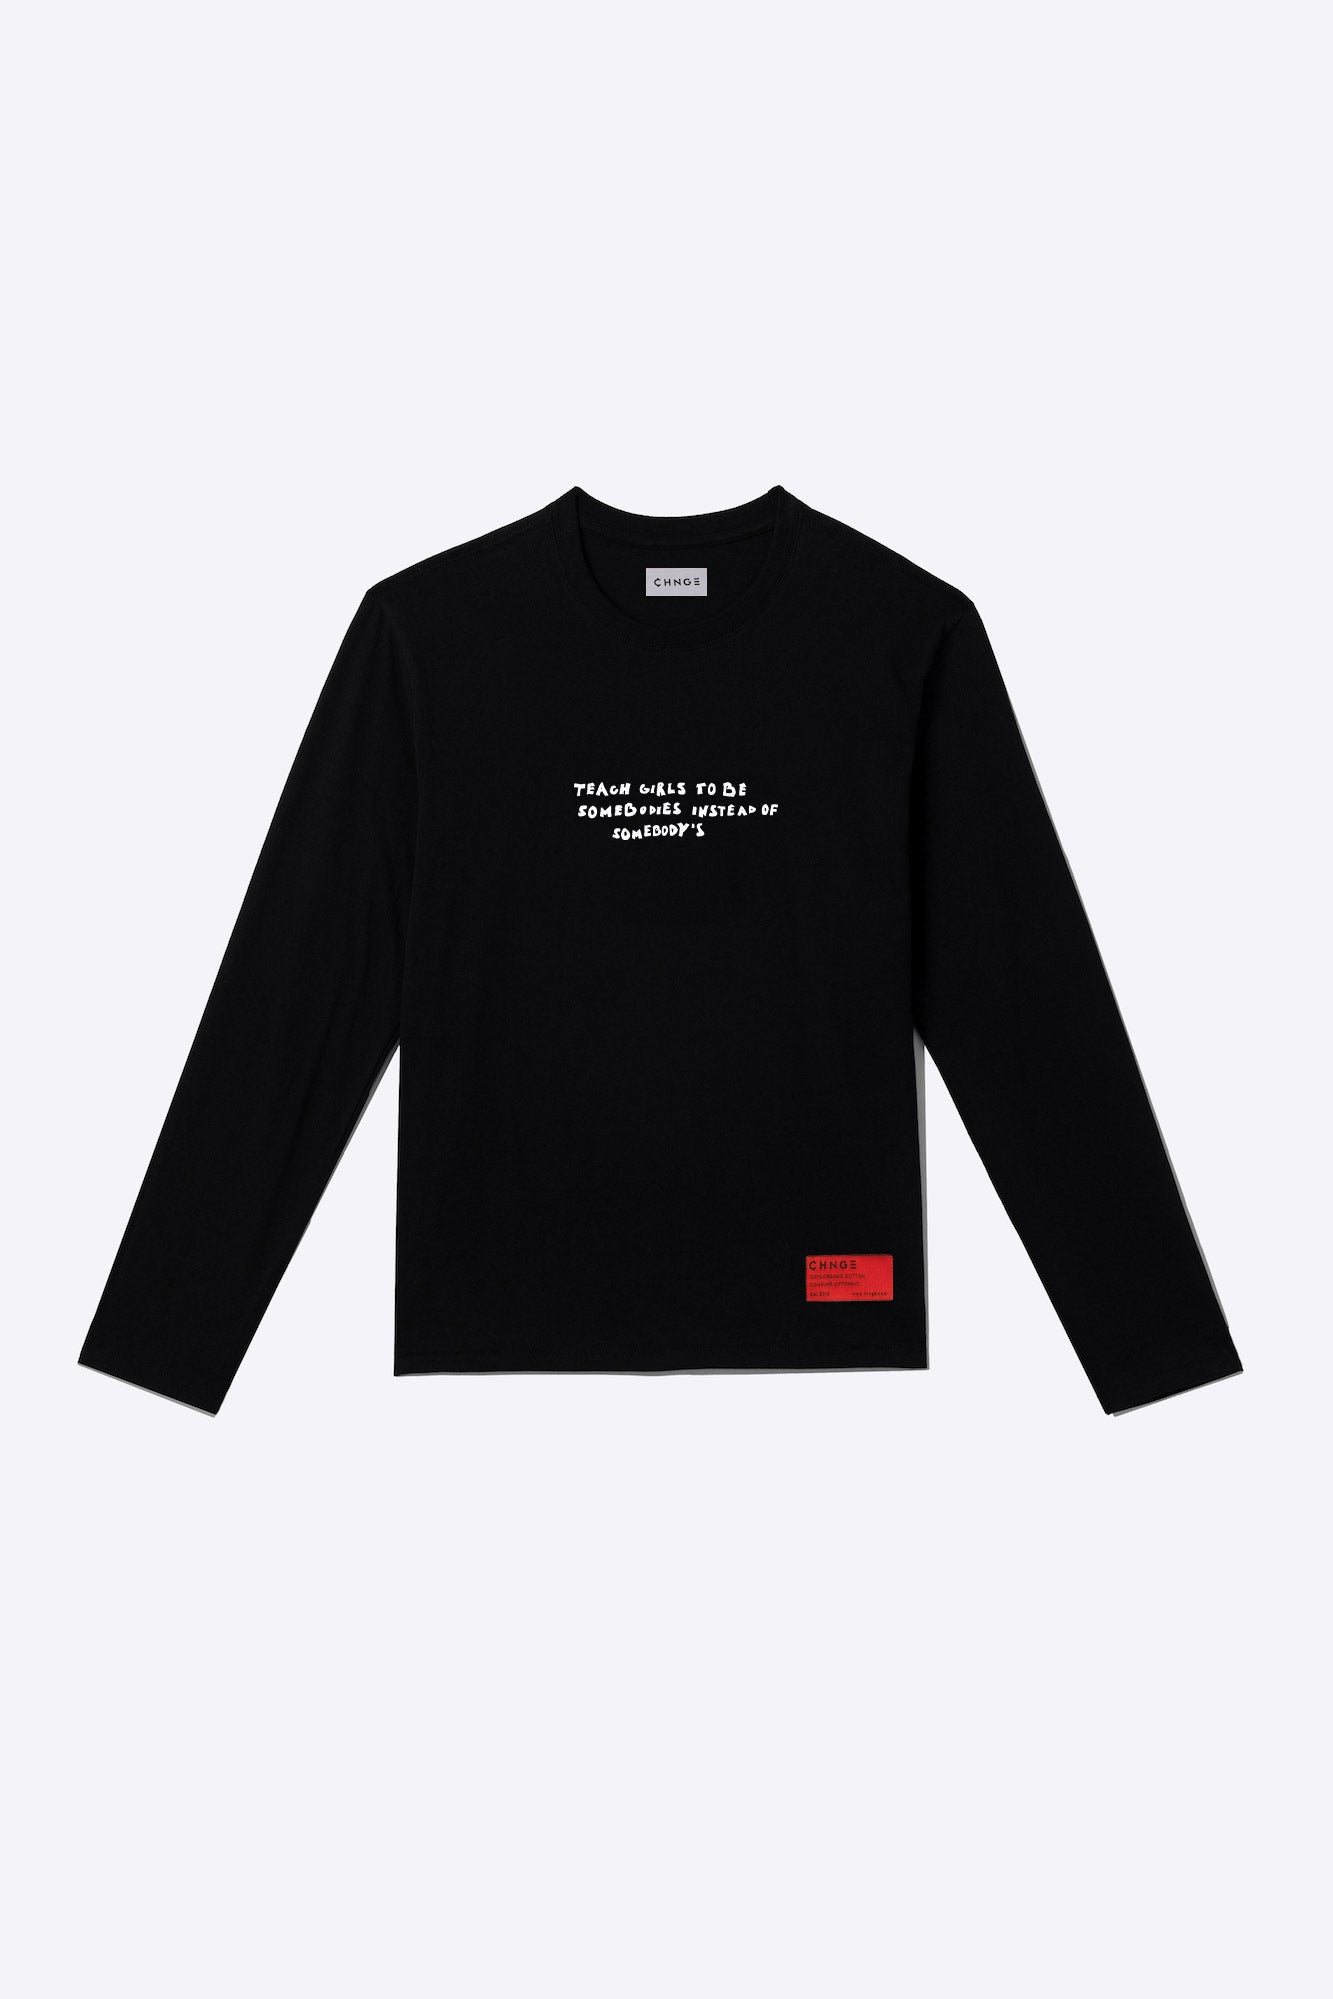 Somebodies Long Sleeve (Black)